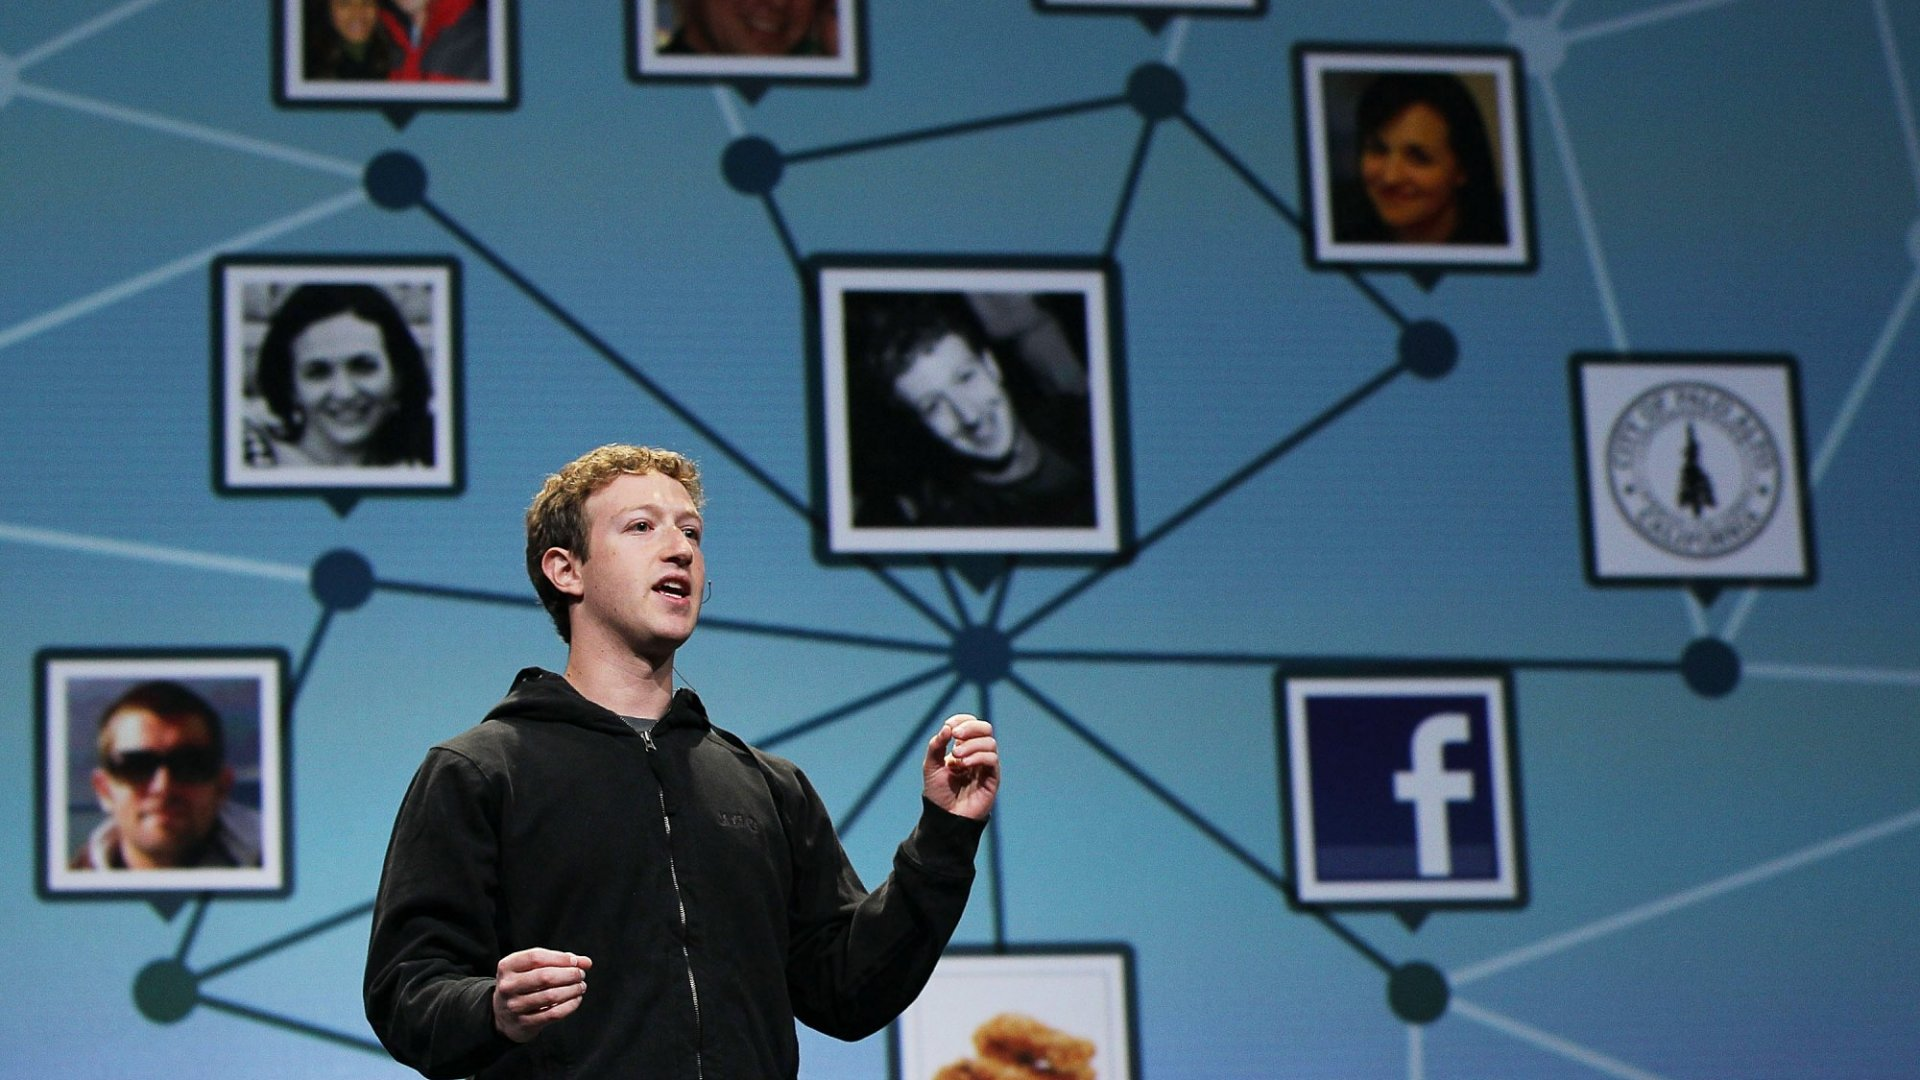 Steve Jobs Convinced Mark Zuckerberg To Focus On Community By Understanding This 1 Thing